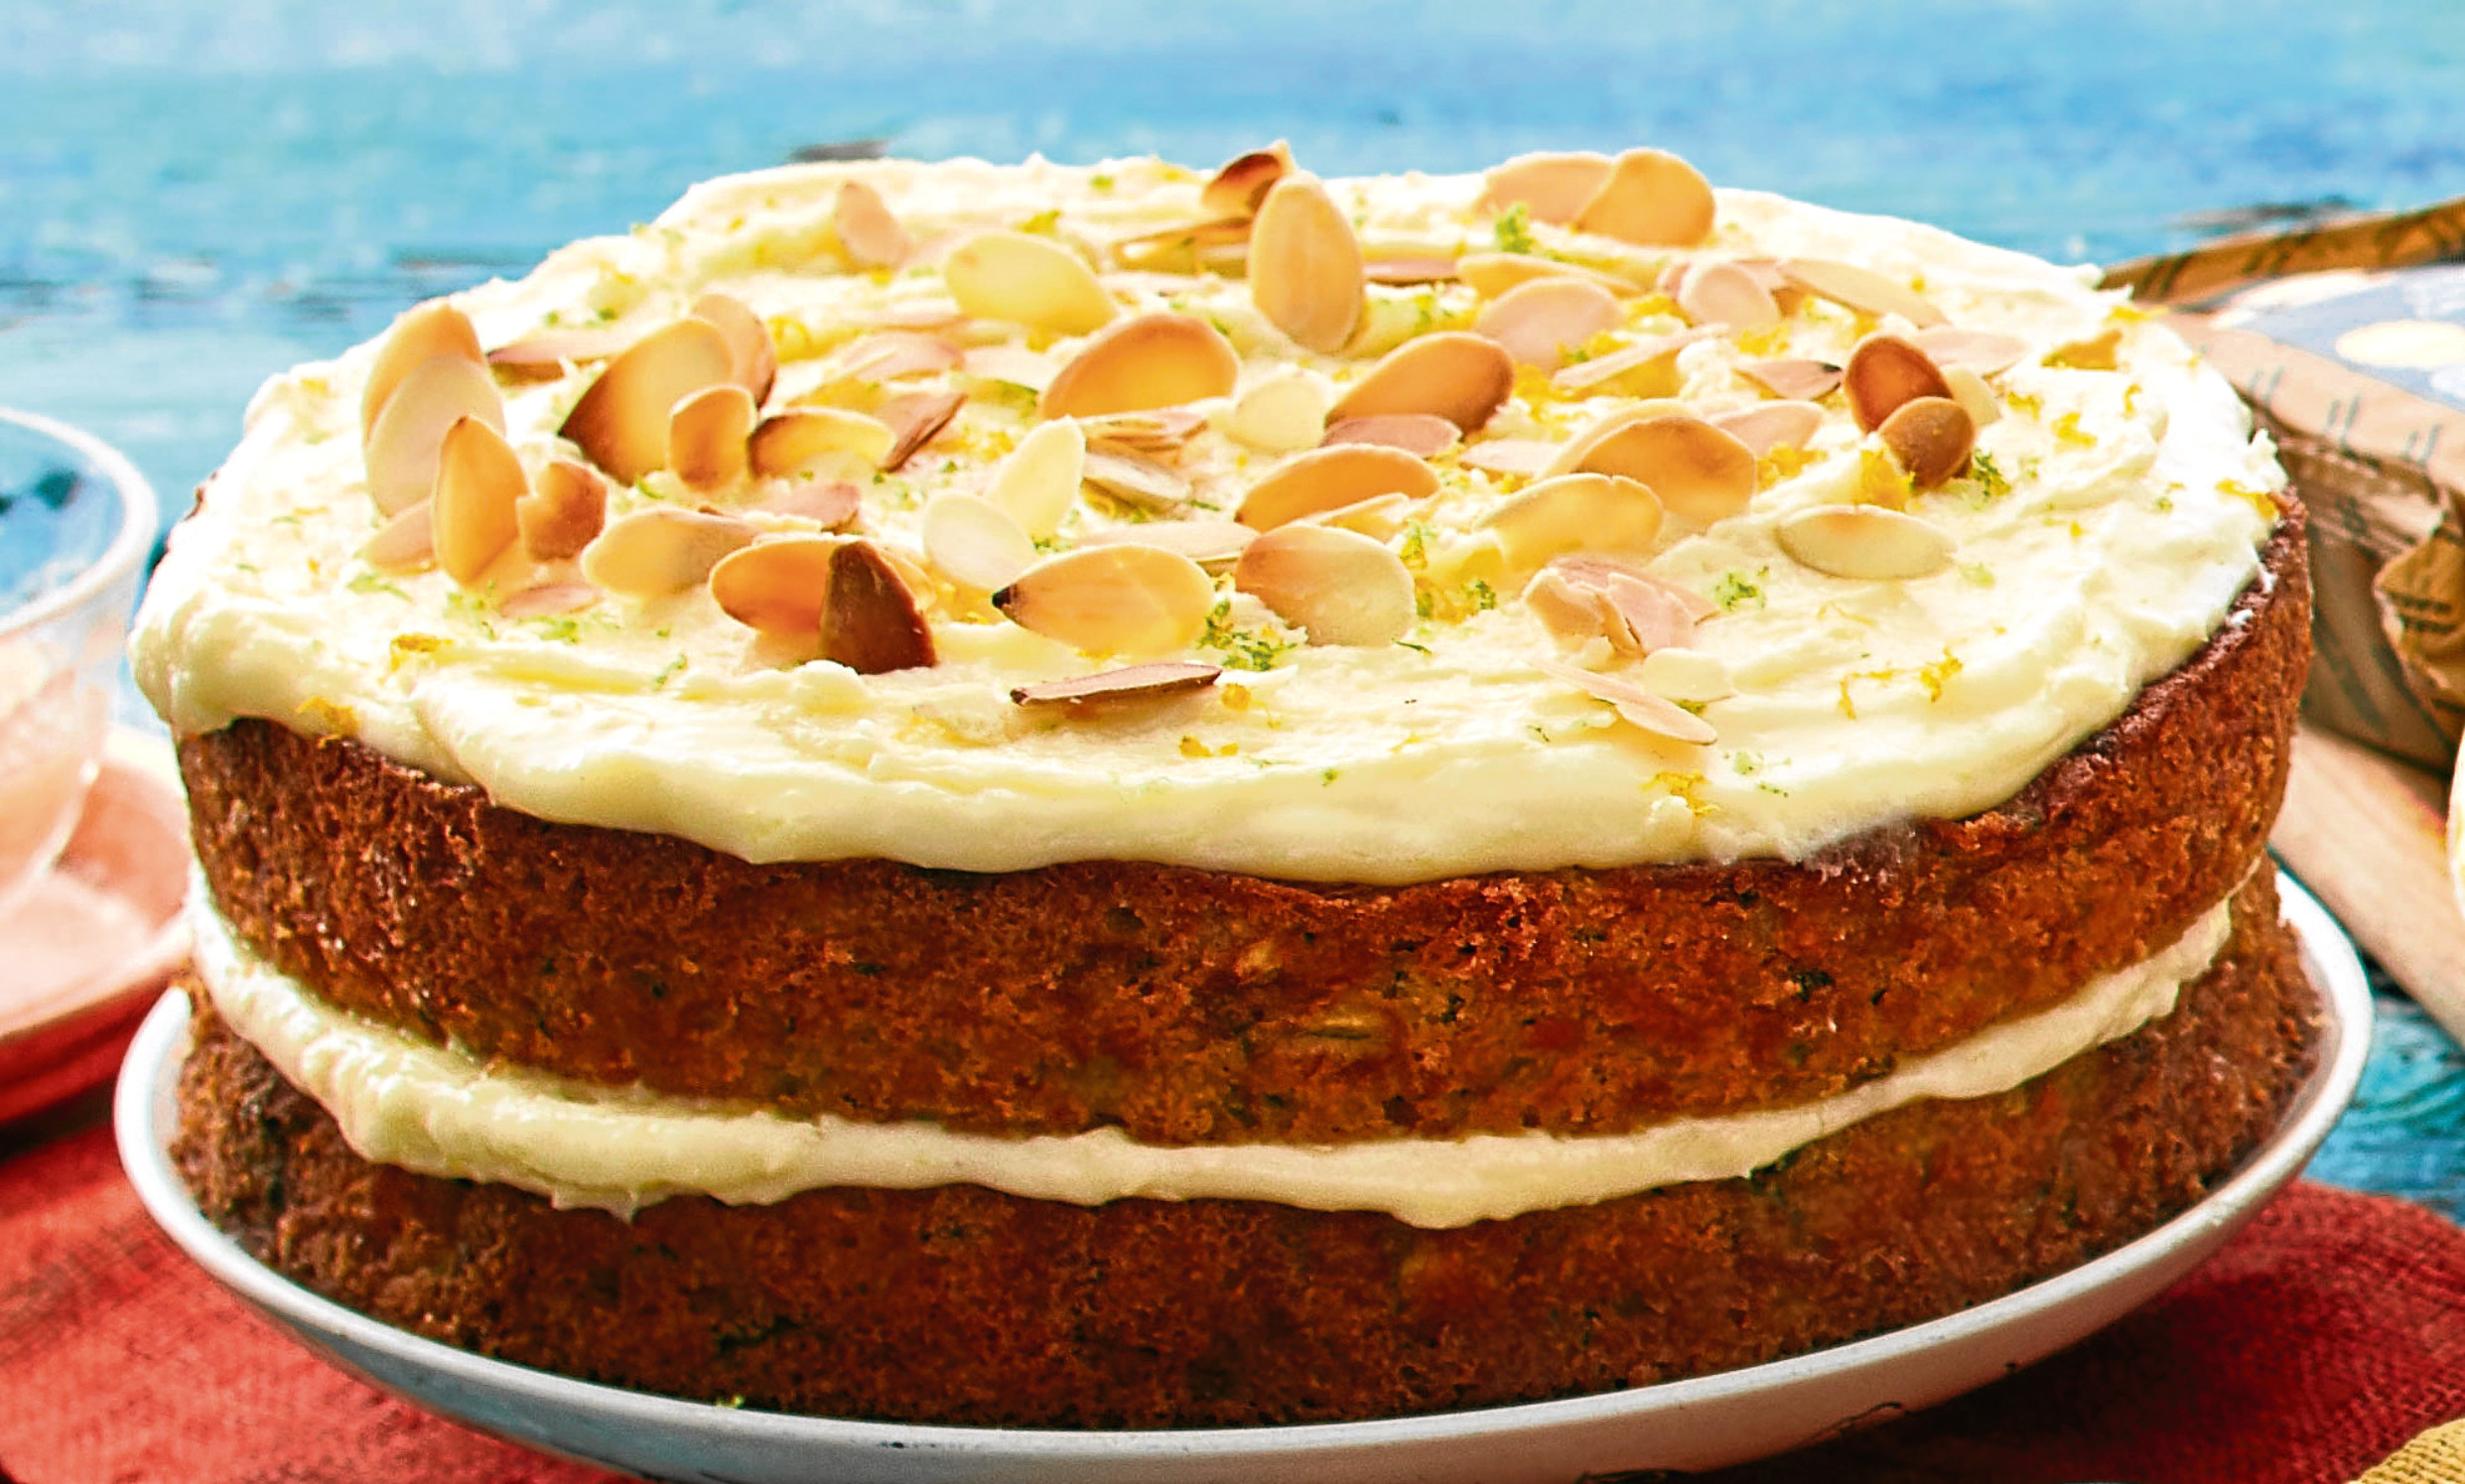 Courgette Cake (Lidl)